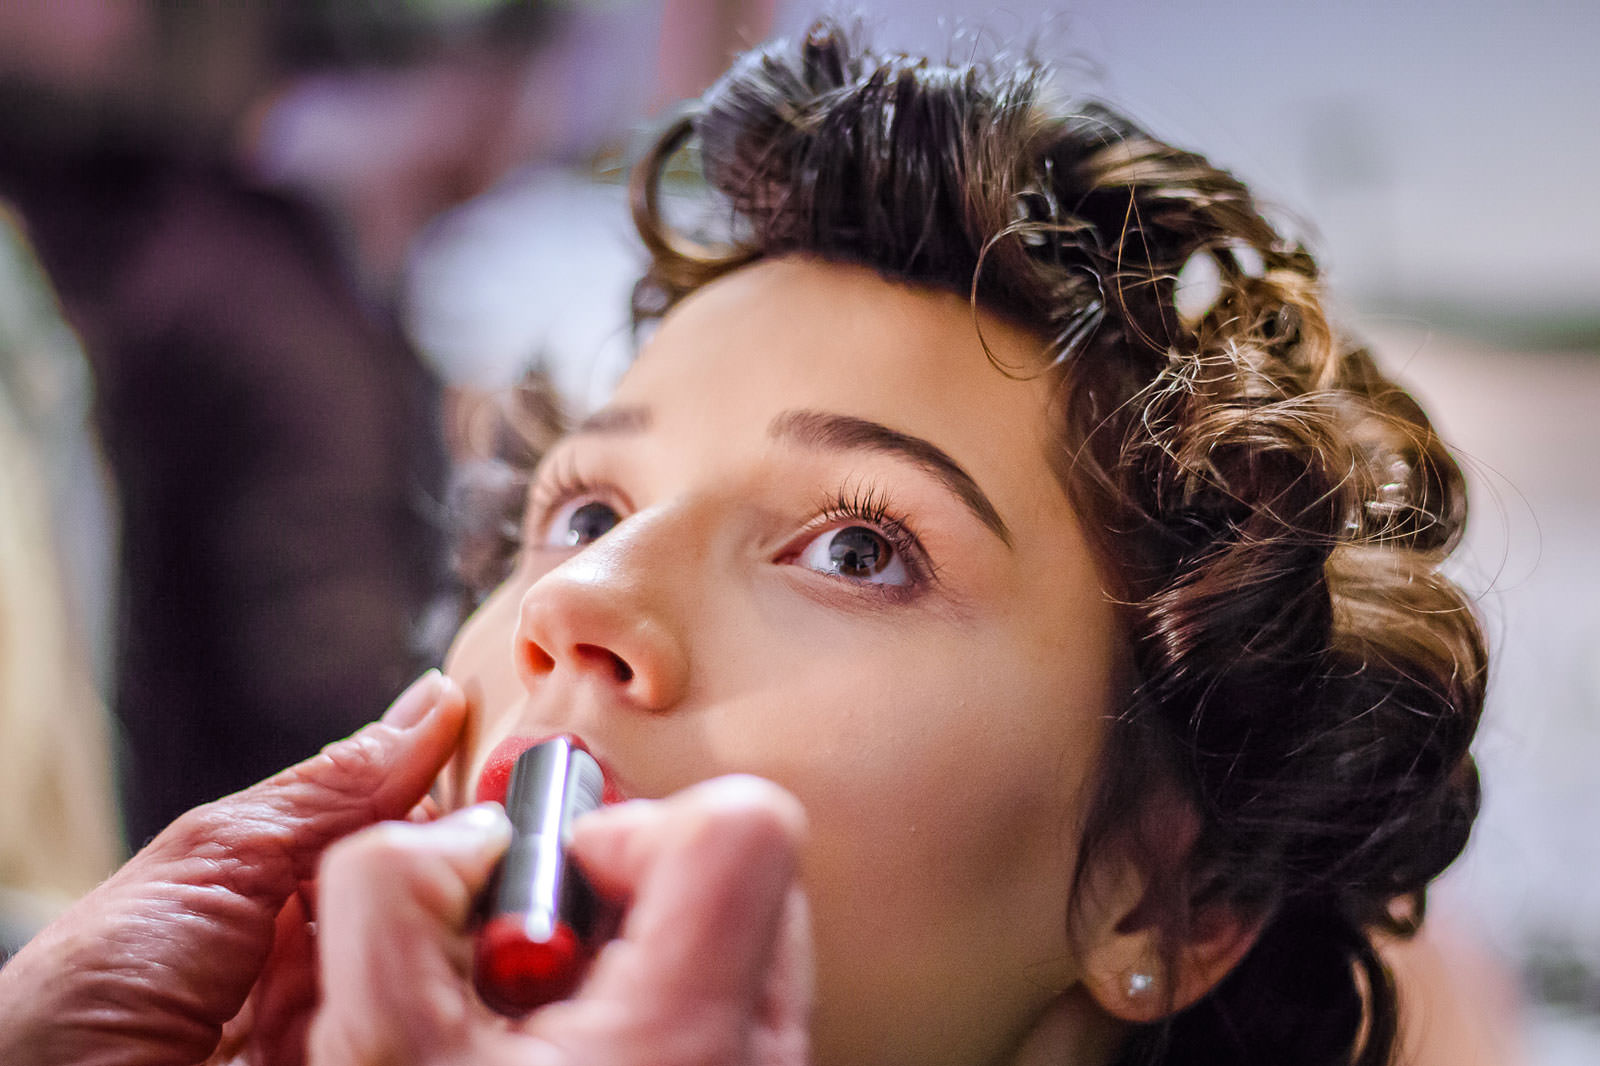 jan-wagner-contentseite-event-make-up_MG_5999.jpg